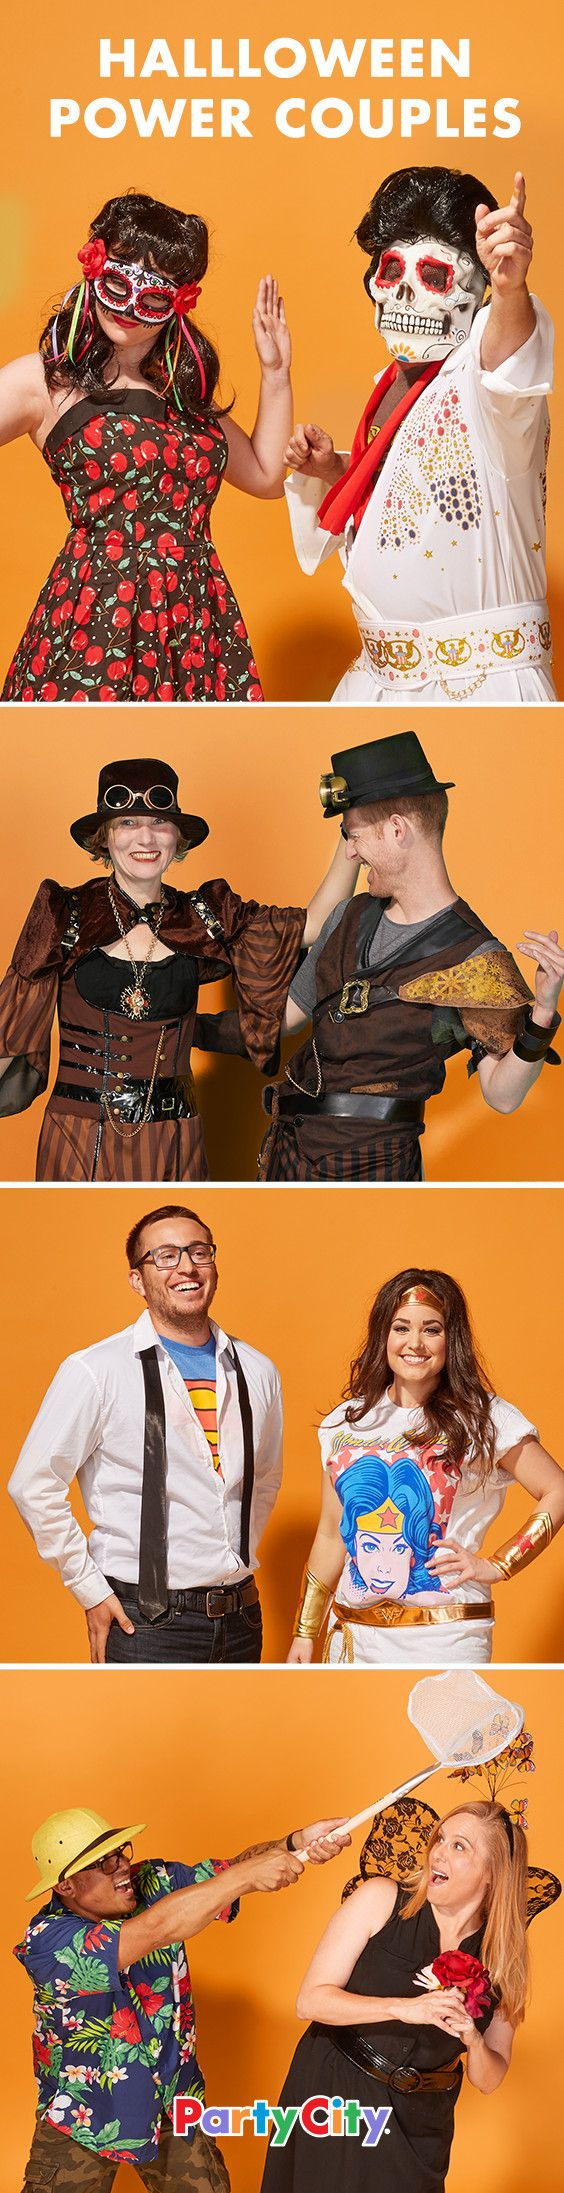 Don't want to DIY but looking to impress as a power couple this Halloween? Kill it as a zombie-rockabilly duo or gear up for pics as a steampunk pair. To keep it casual, go as superheroes in t-shirts or grab accessories for a butterfly-catching couple. See our round-up of 16 ideas for inspo!